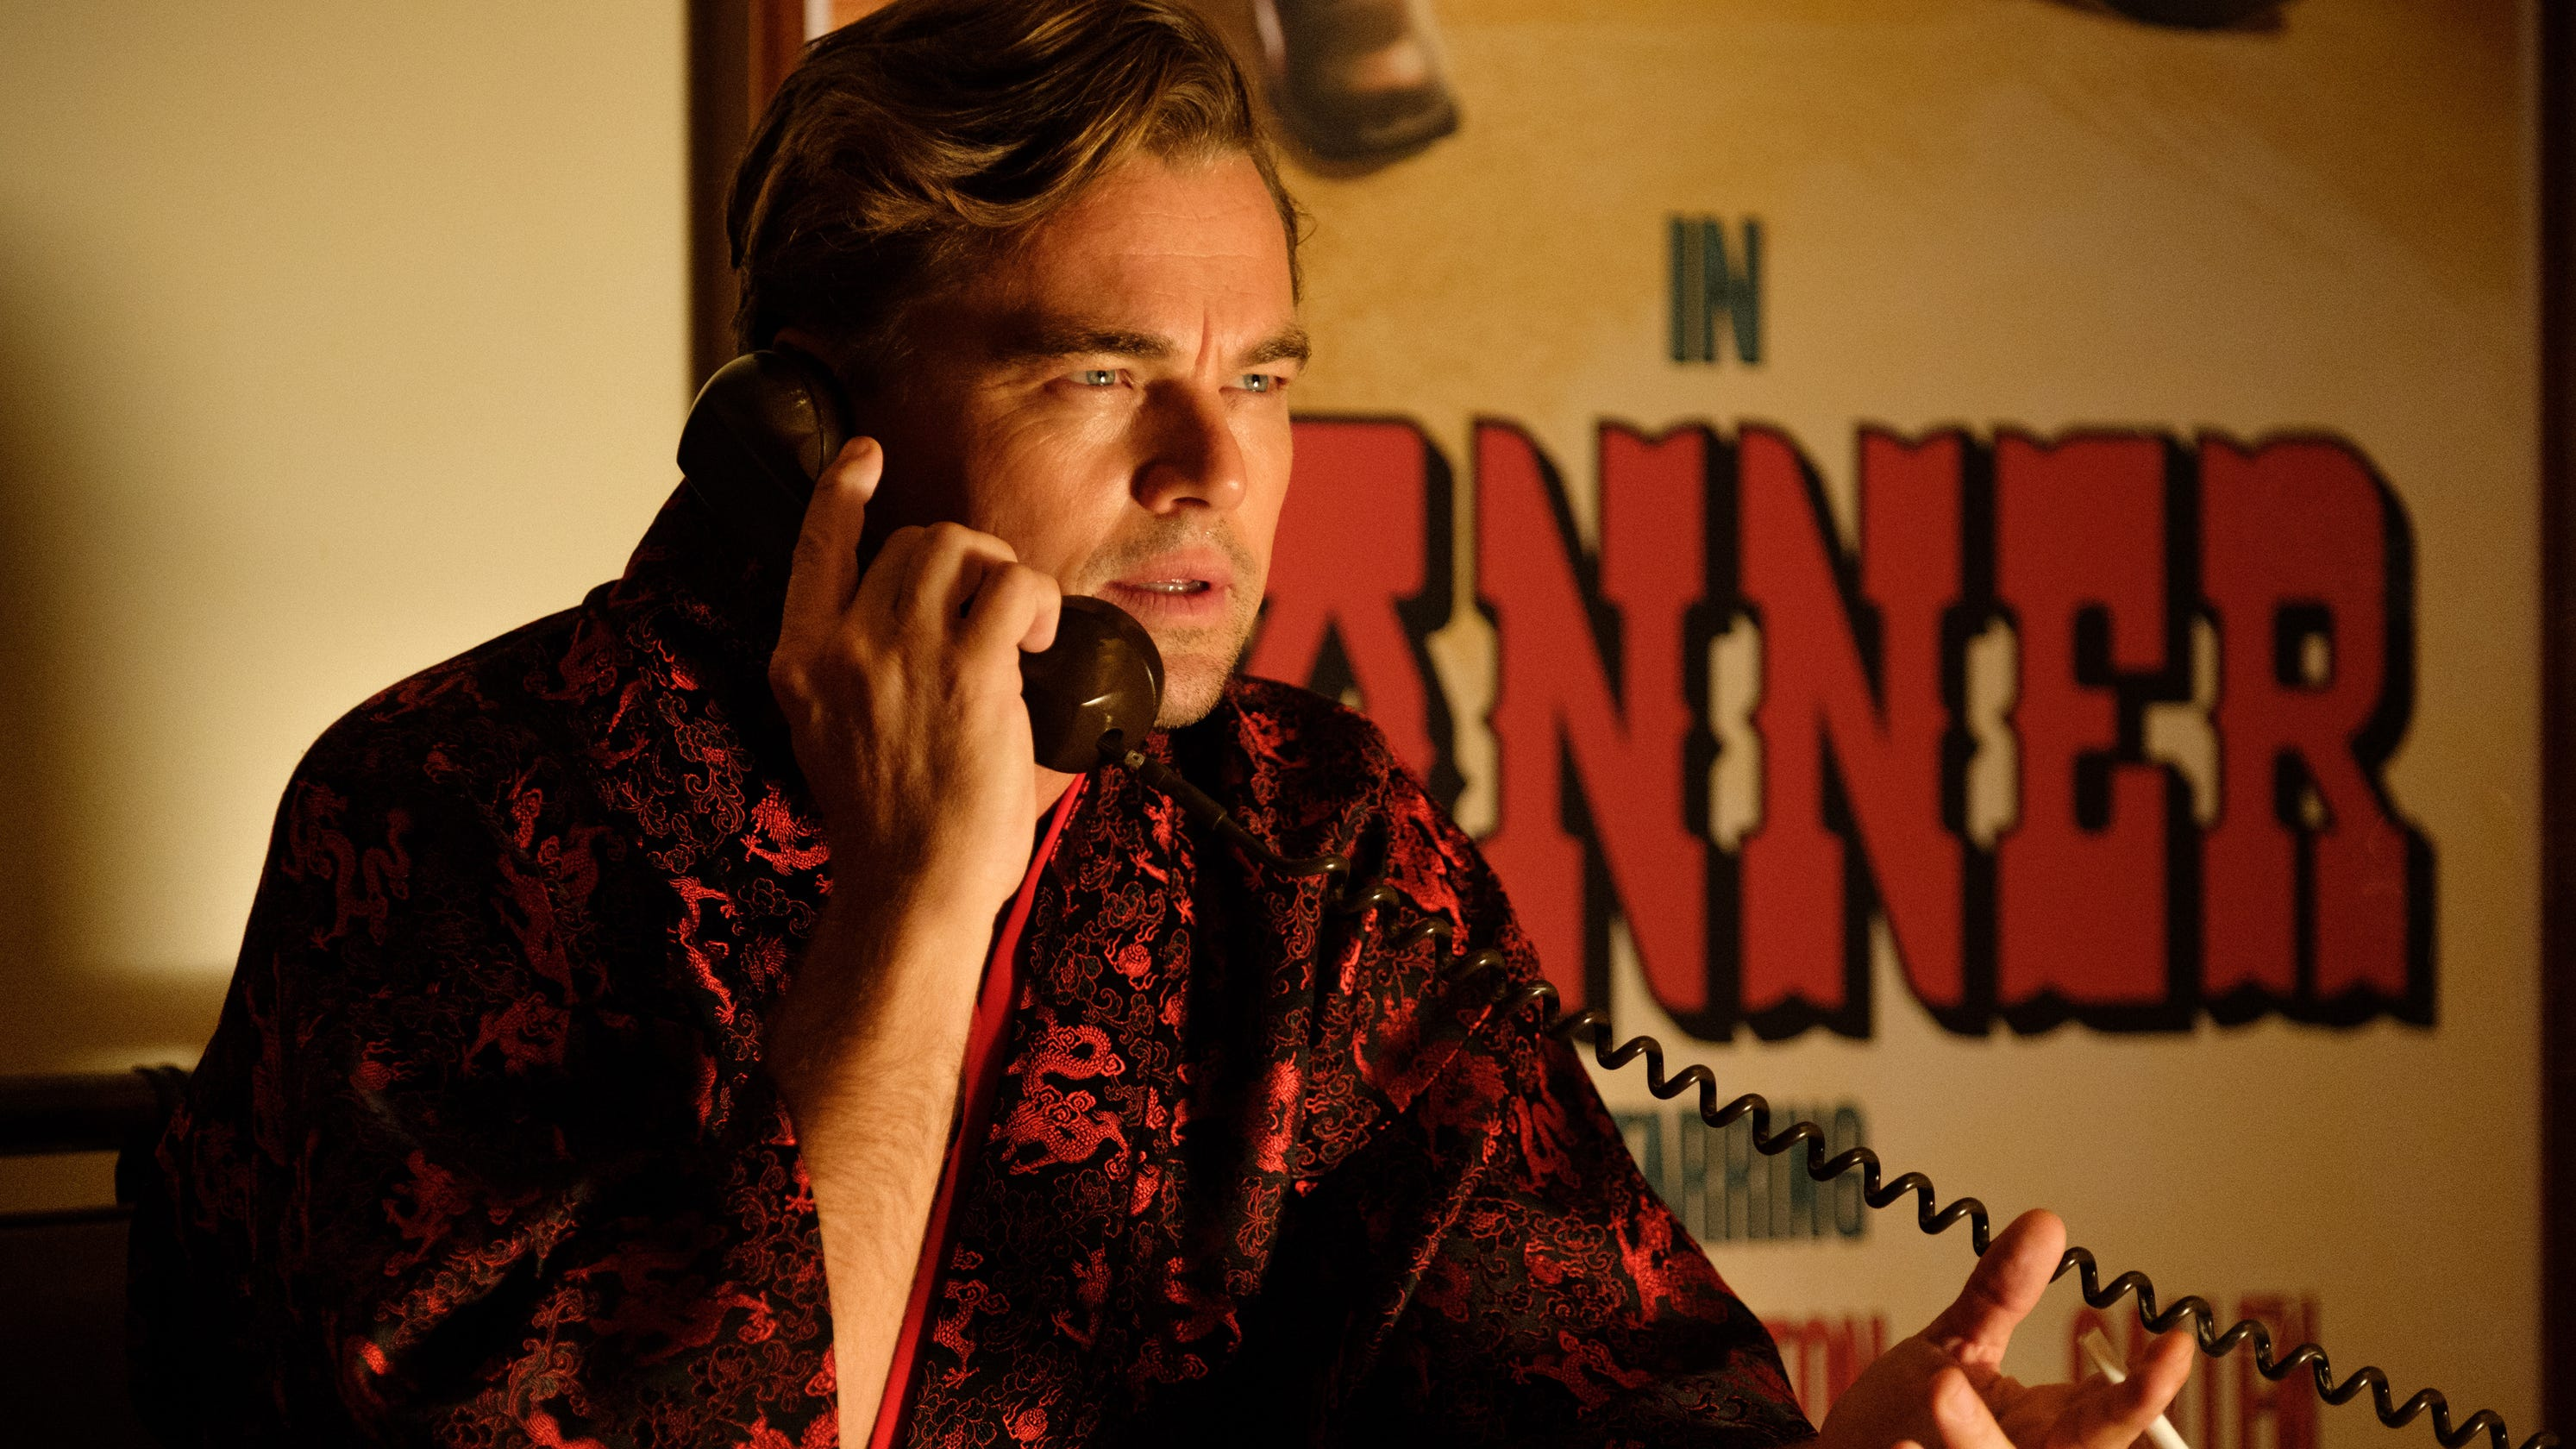 Once Upon A Time in Hollywood': Every Quentin Tarantino film